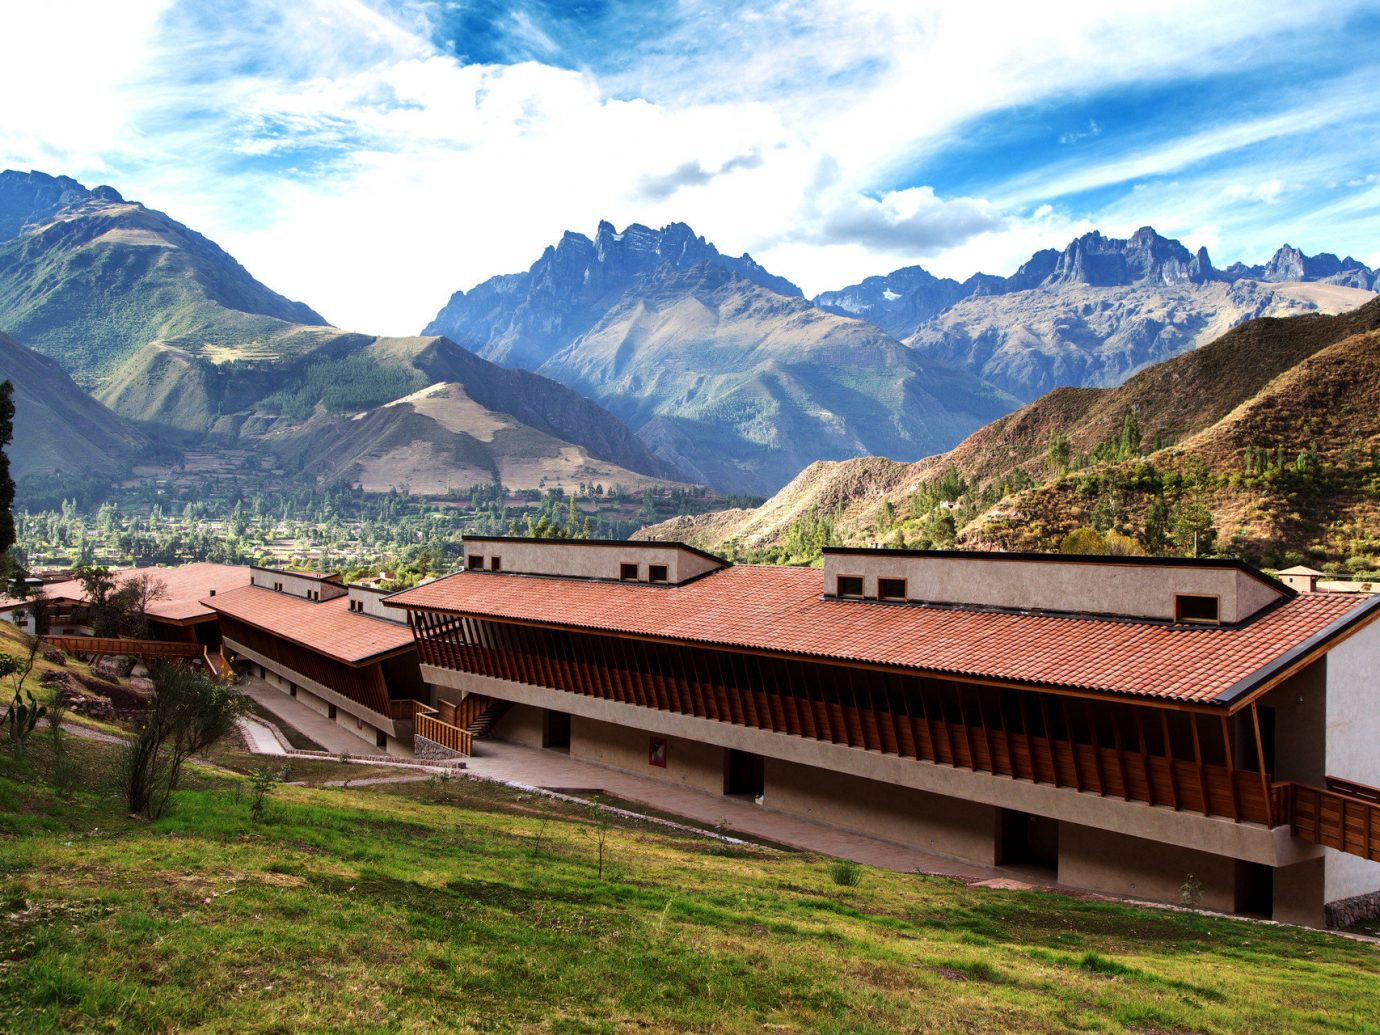 Exterior Hotels isolation Mountains Nature Outdoors remote Rustic mountain grass sky outdoor mountainous landforms mountain range geographical feature alps valley hill background rural area landscape Village estate mountain pass plateau area base hillside lush highland